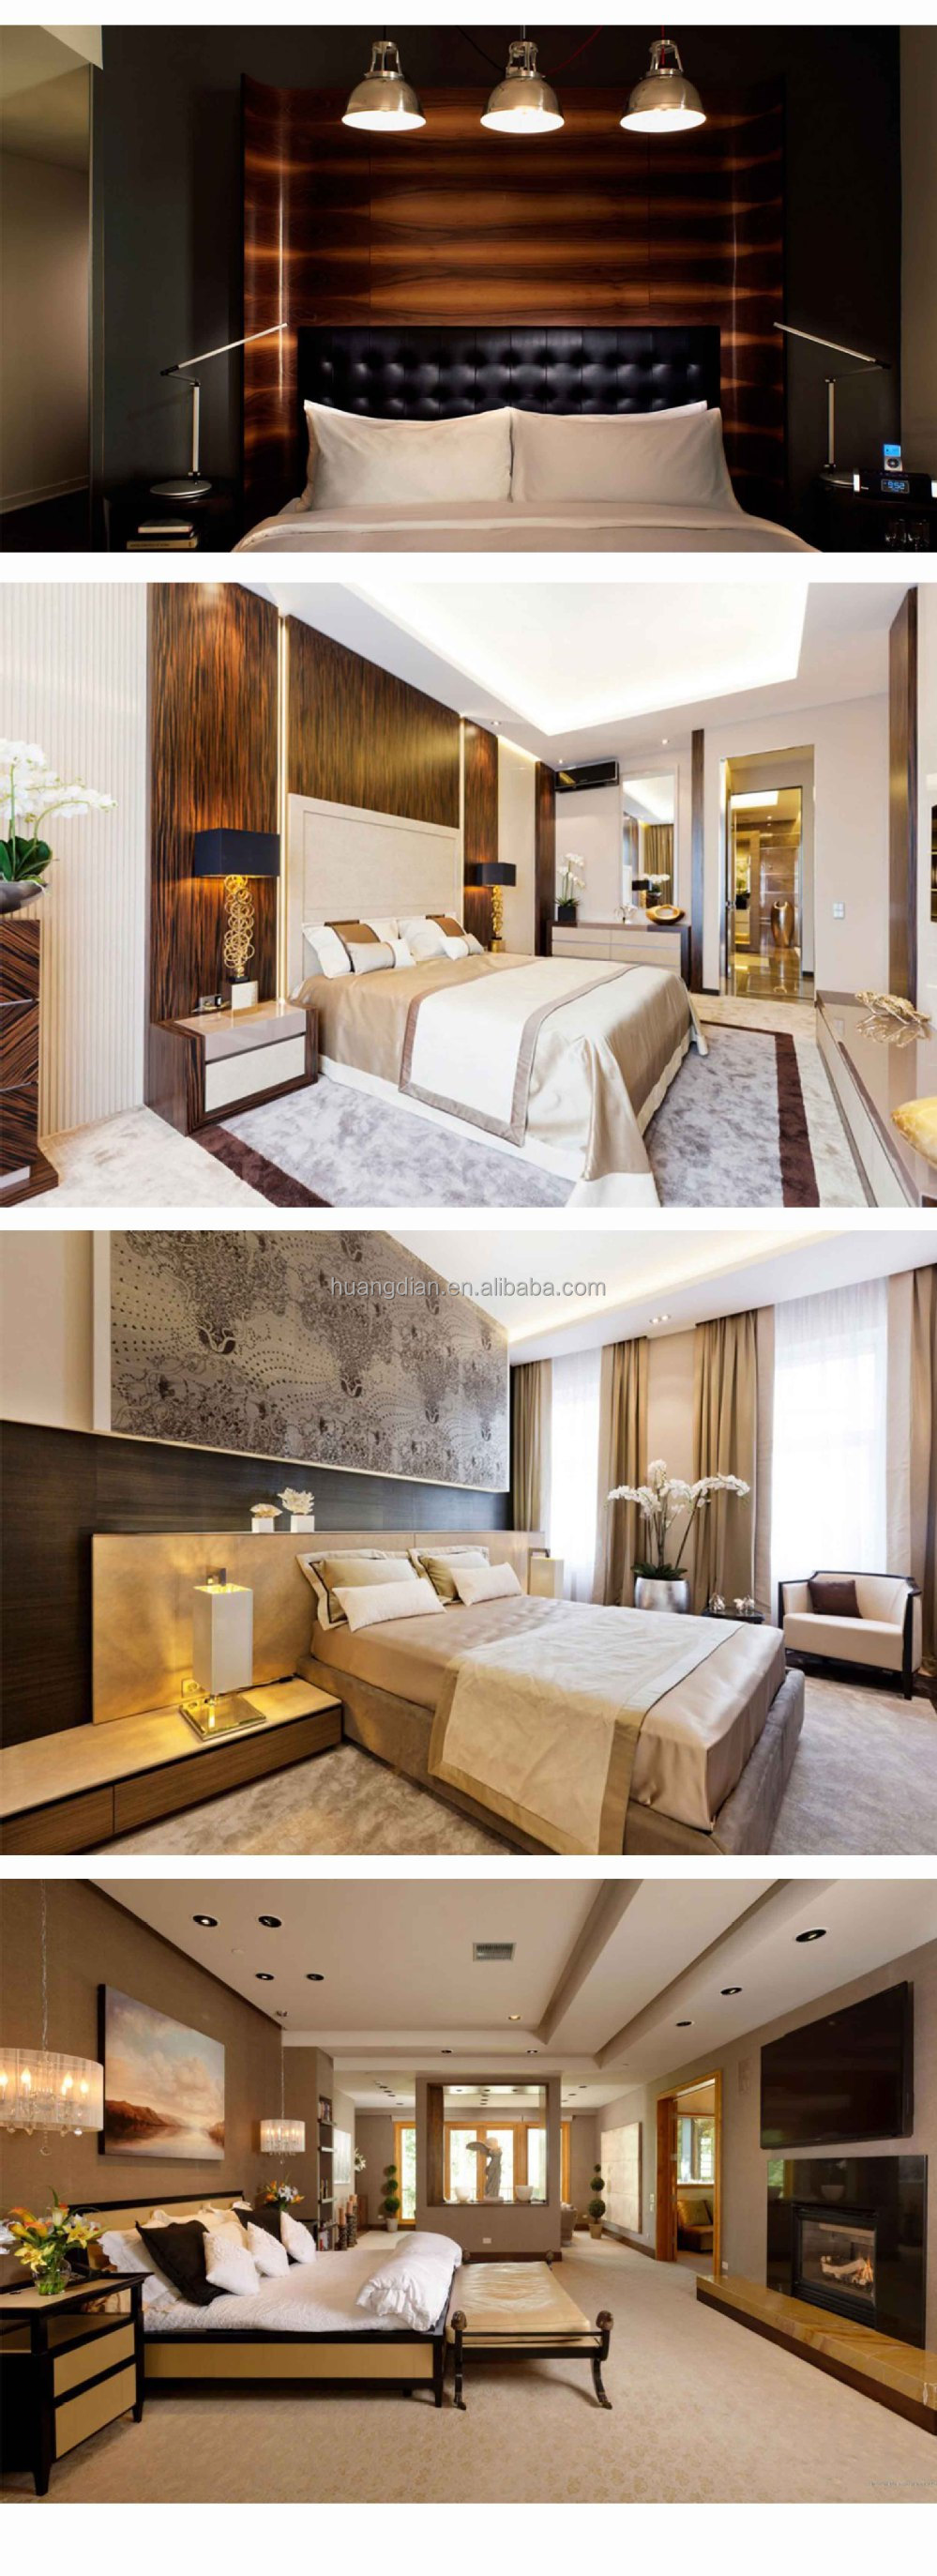 Hotel room furniture sets - Malaysia High End Bedroom Hotel Room Furniture Luxury Furniture Bed Room Set